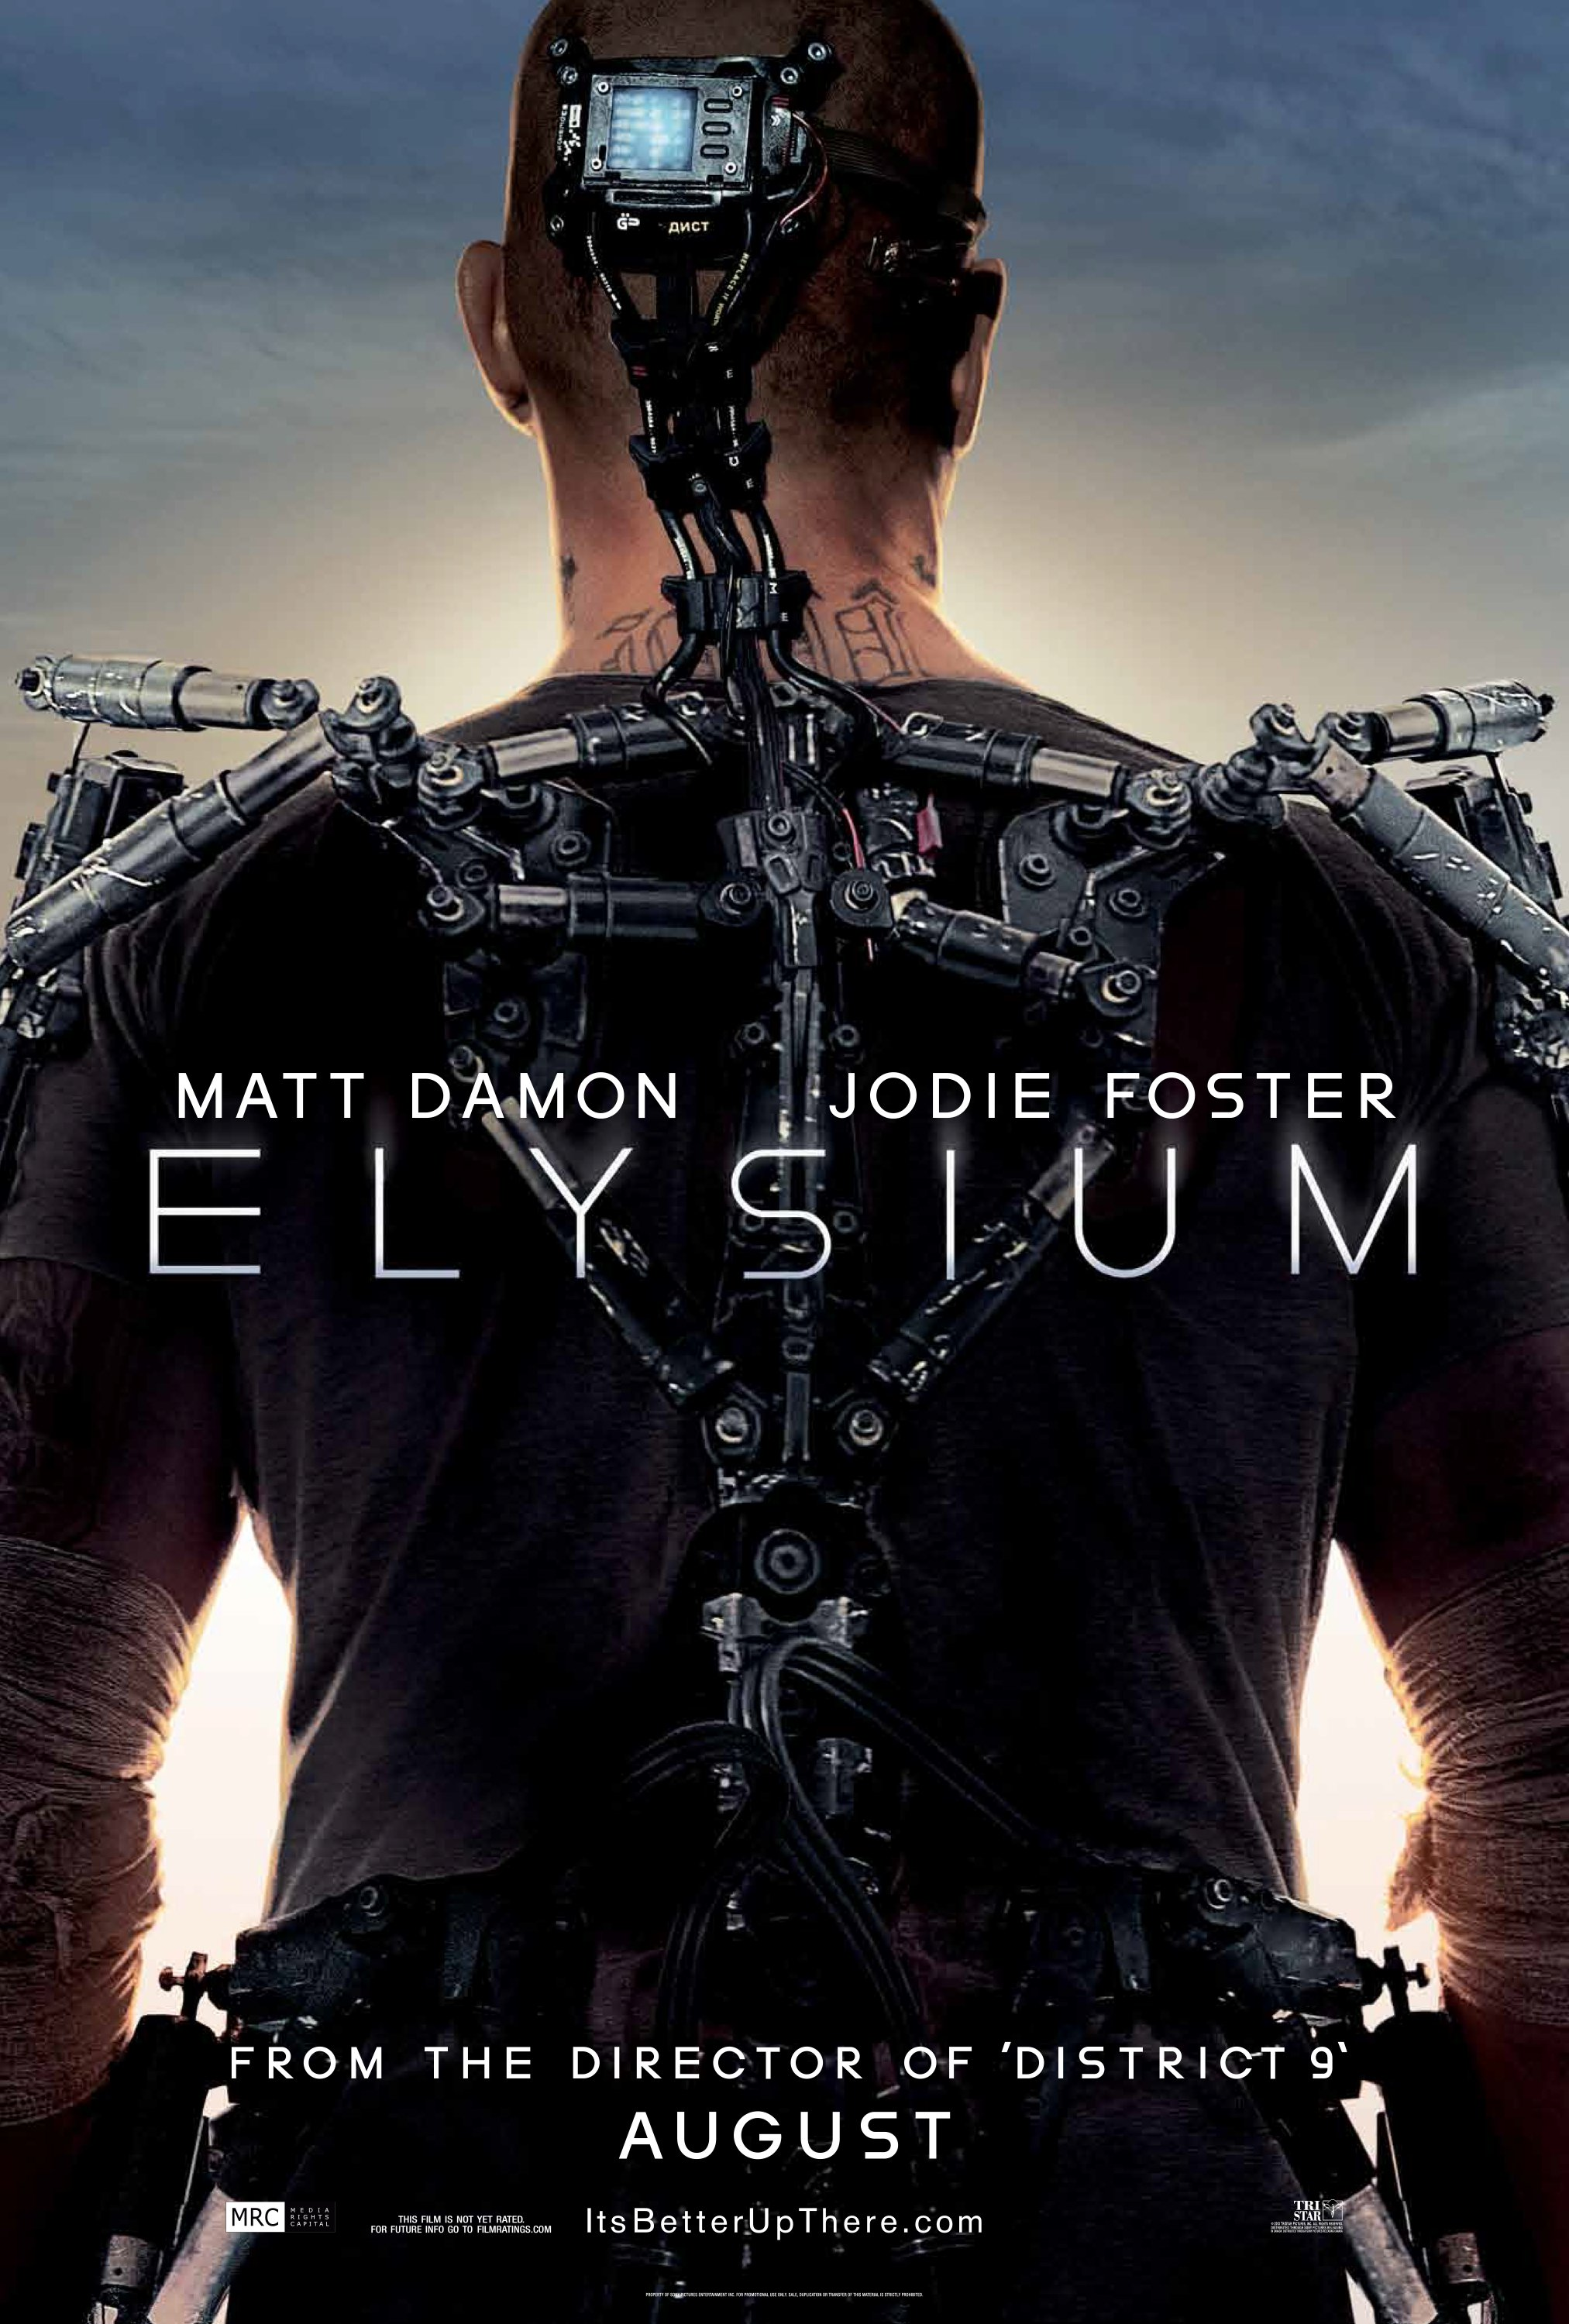 https://soniaunleashed.files.wordpress.com/2013/08/elysium-poster2.jpg